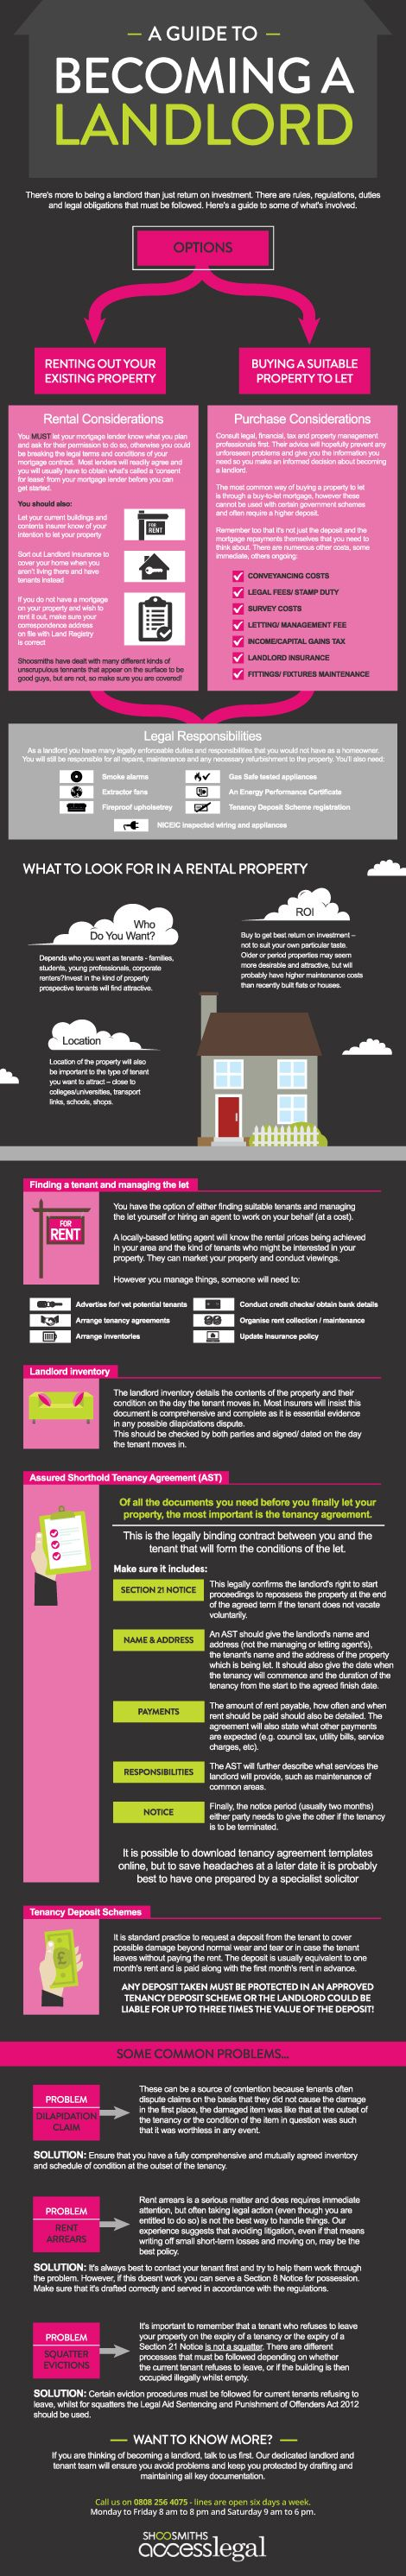 Real estate property... Infographic about how to become a landlord Jim Pellerin............................................................... Visit Now!  OwnItLand.com